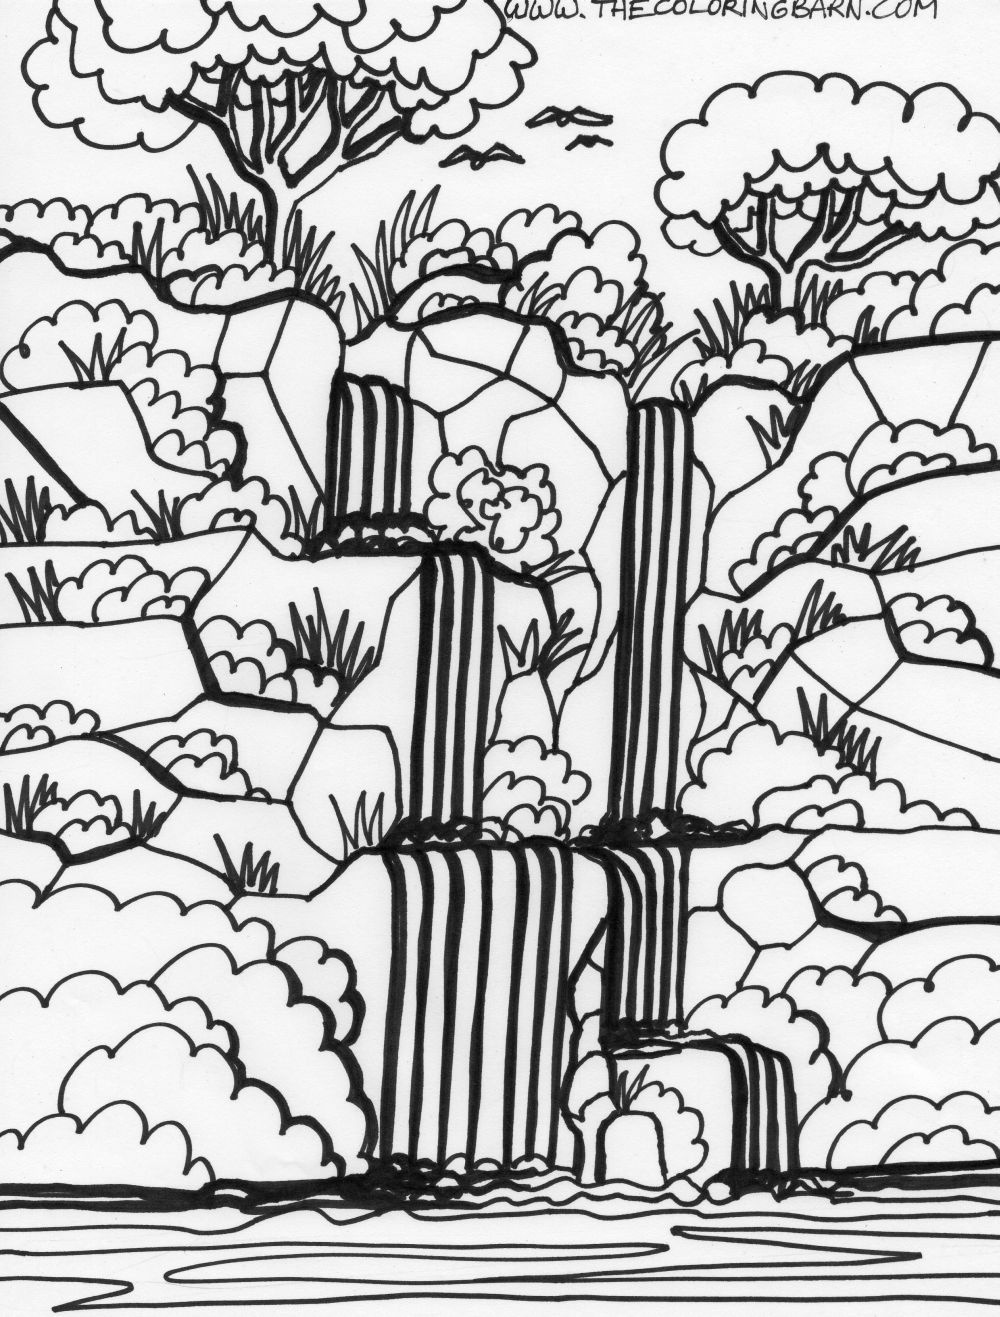 Amazon Rainforest Coloring Pages For Kids | Brazil Inspiration - Free Printable Waterfall Coloring Pages